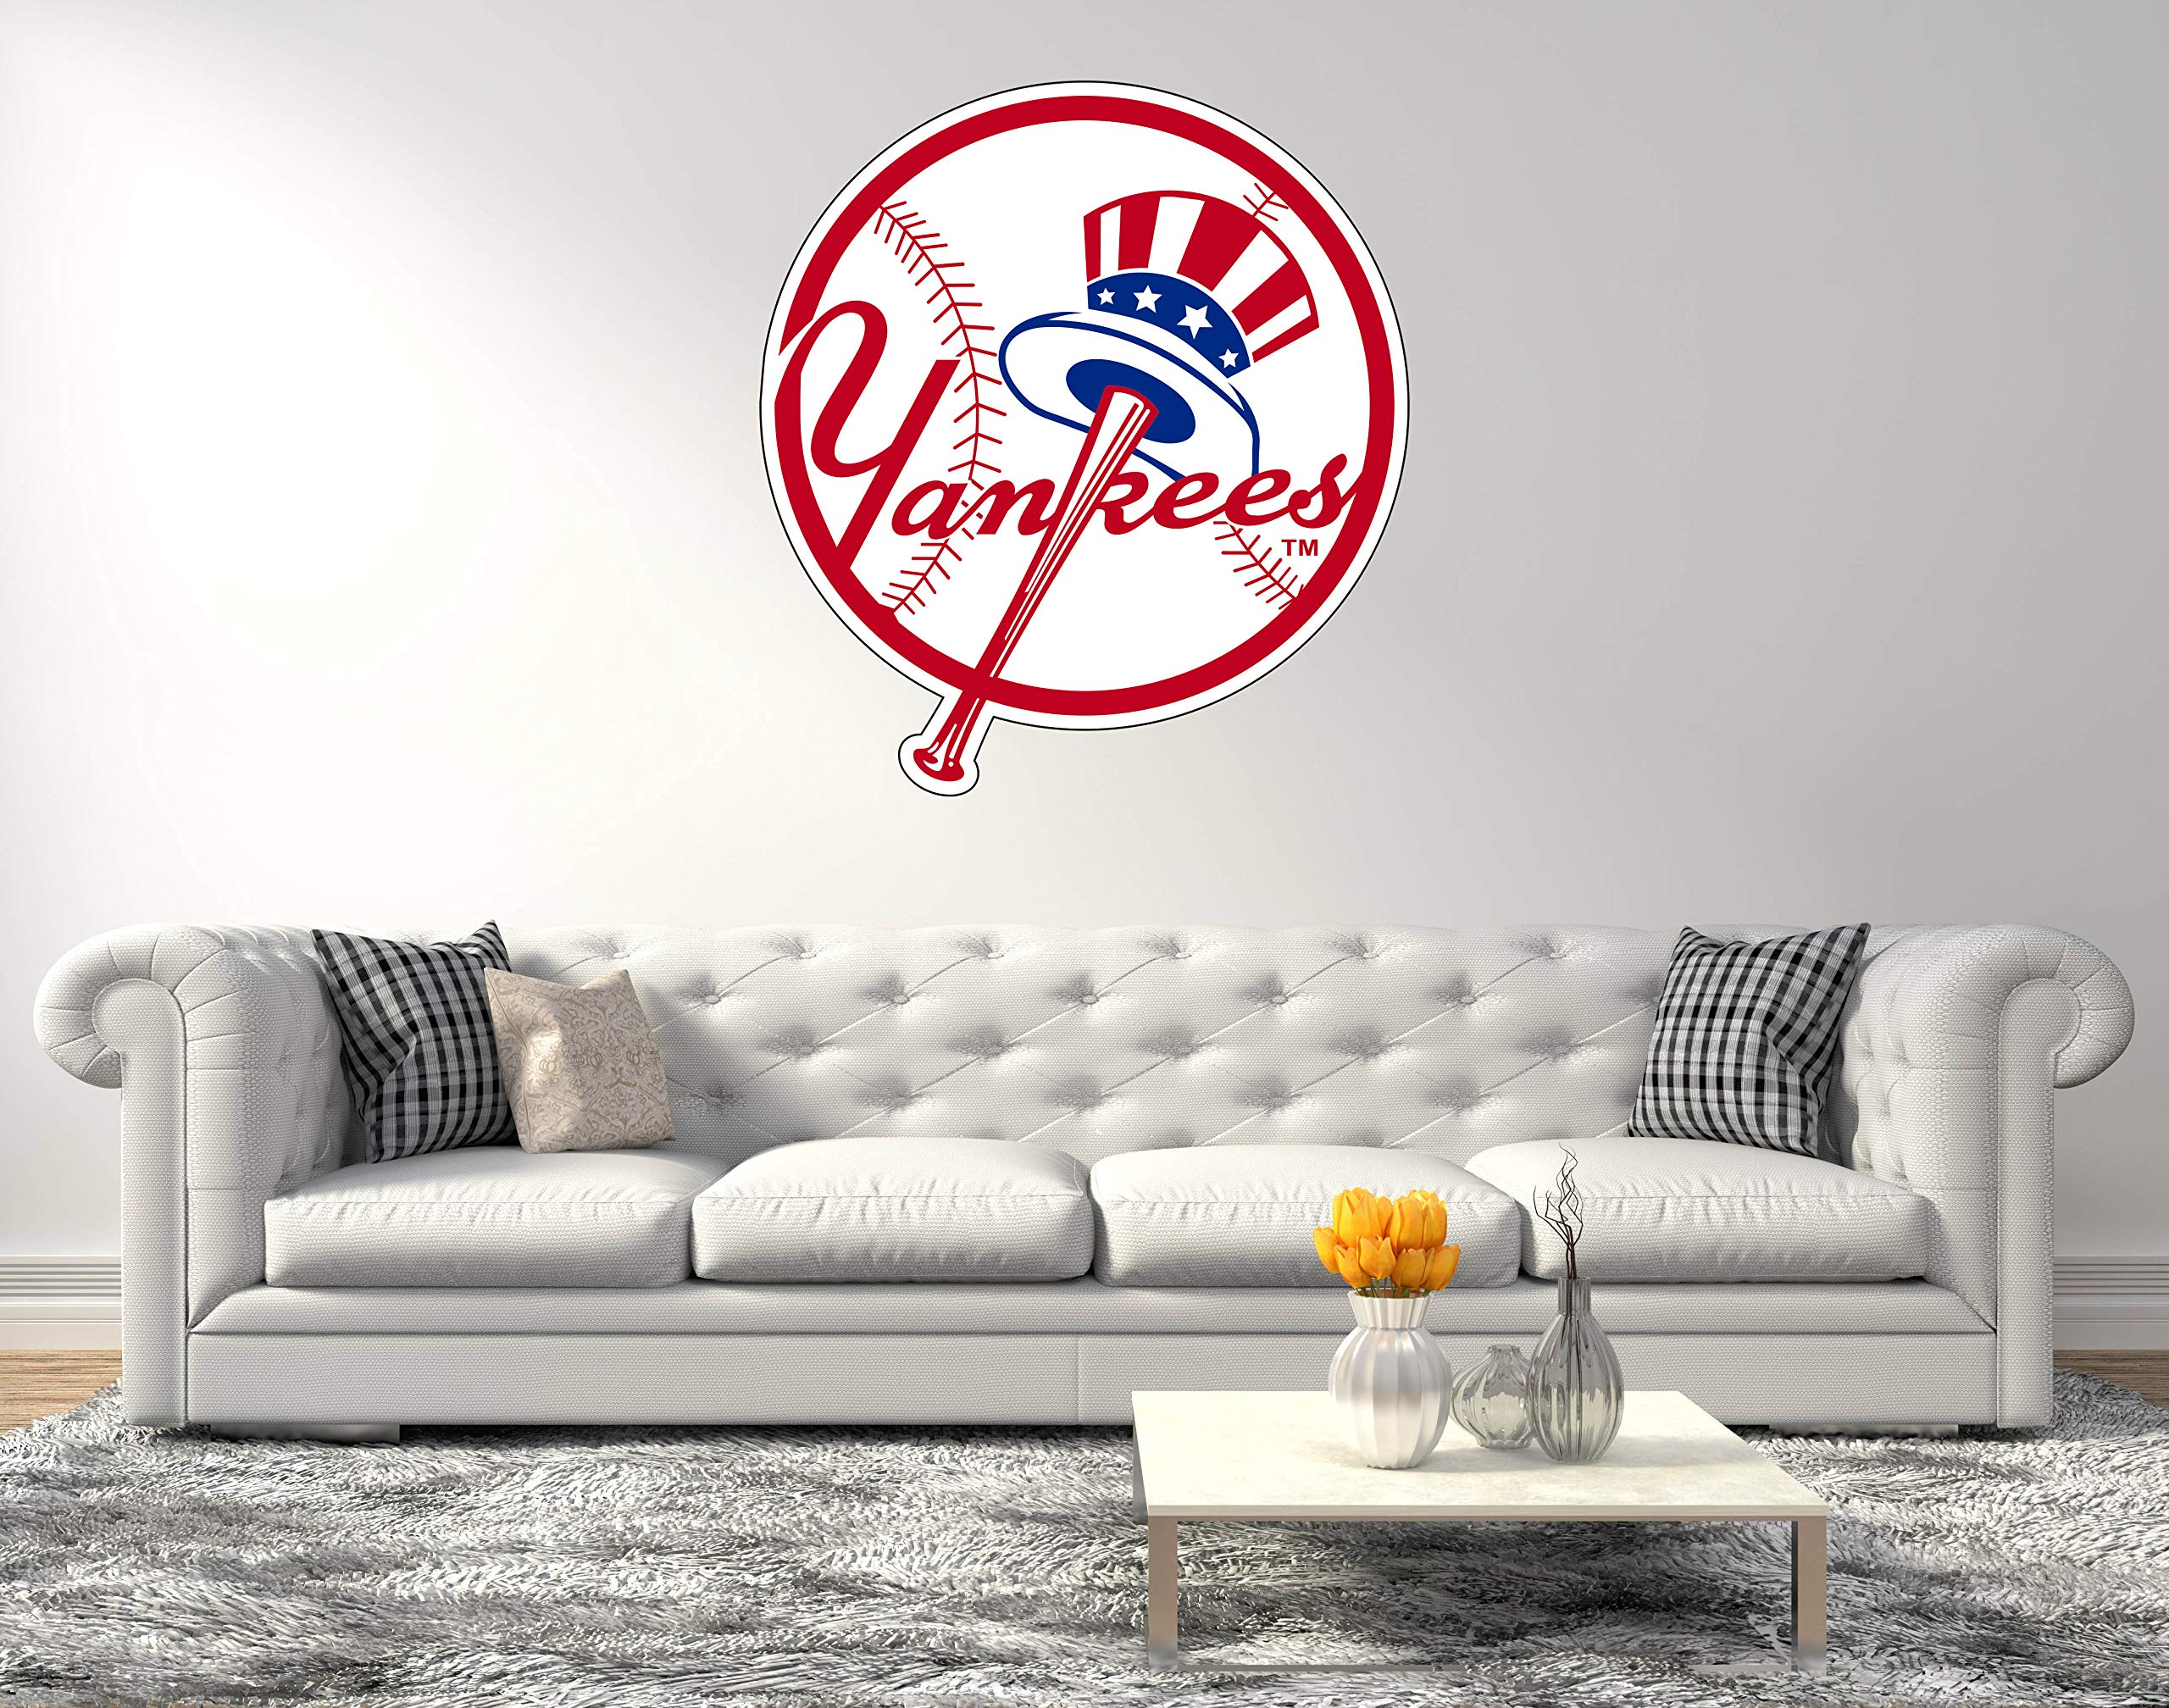 American Baseball Team Yankees Logo - Wall Decal for Home Bedroom Hall Decoration (Wide 30''x33'' Height inches)